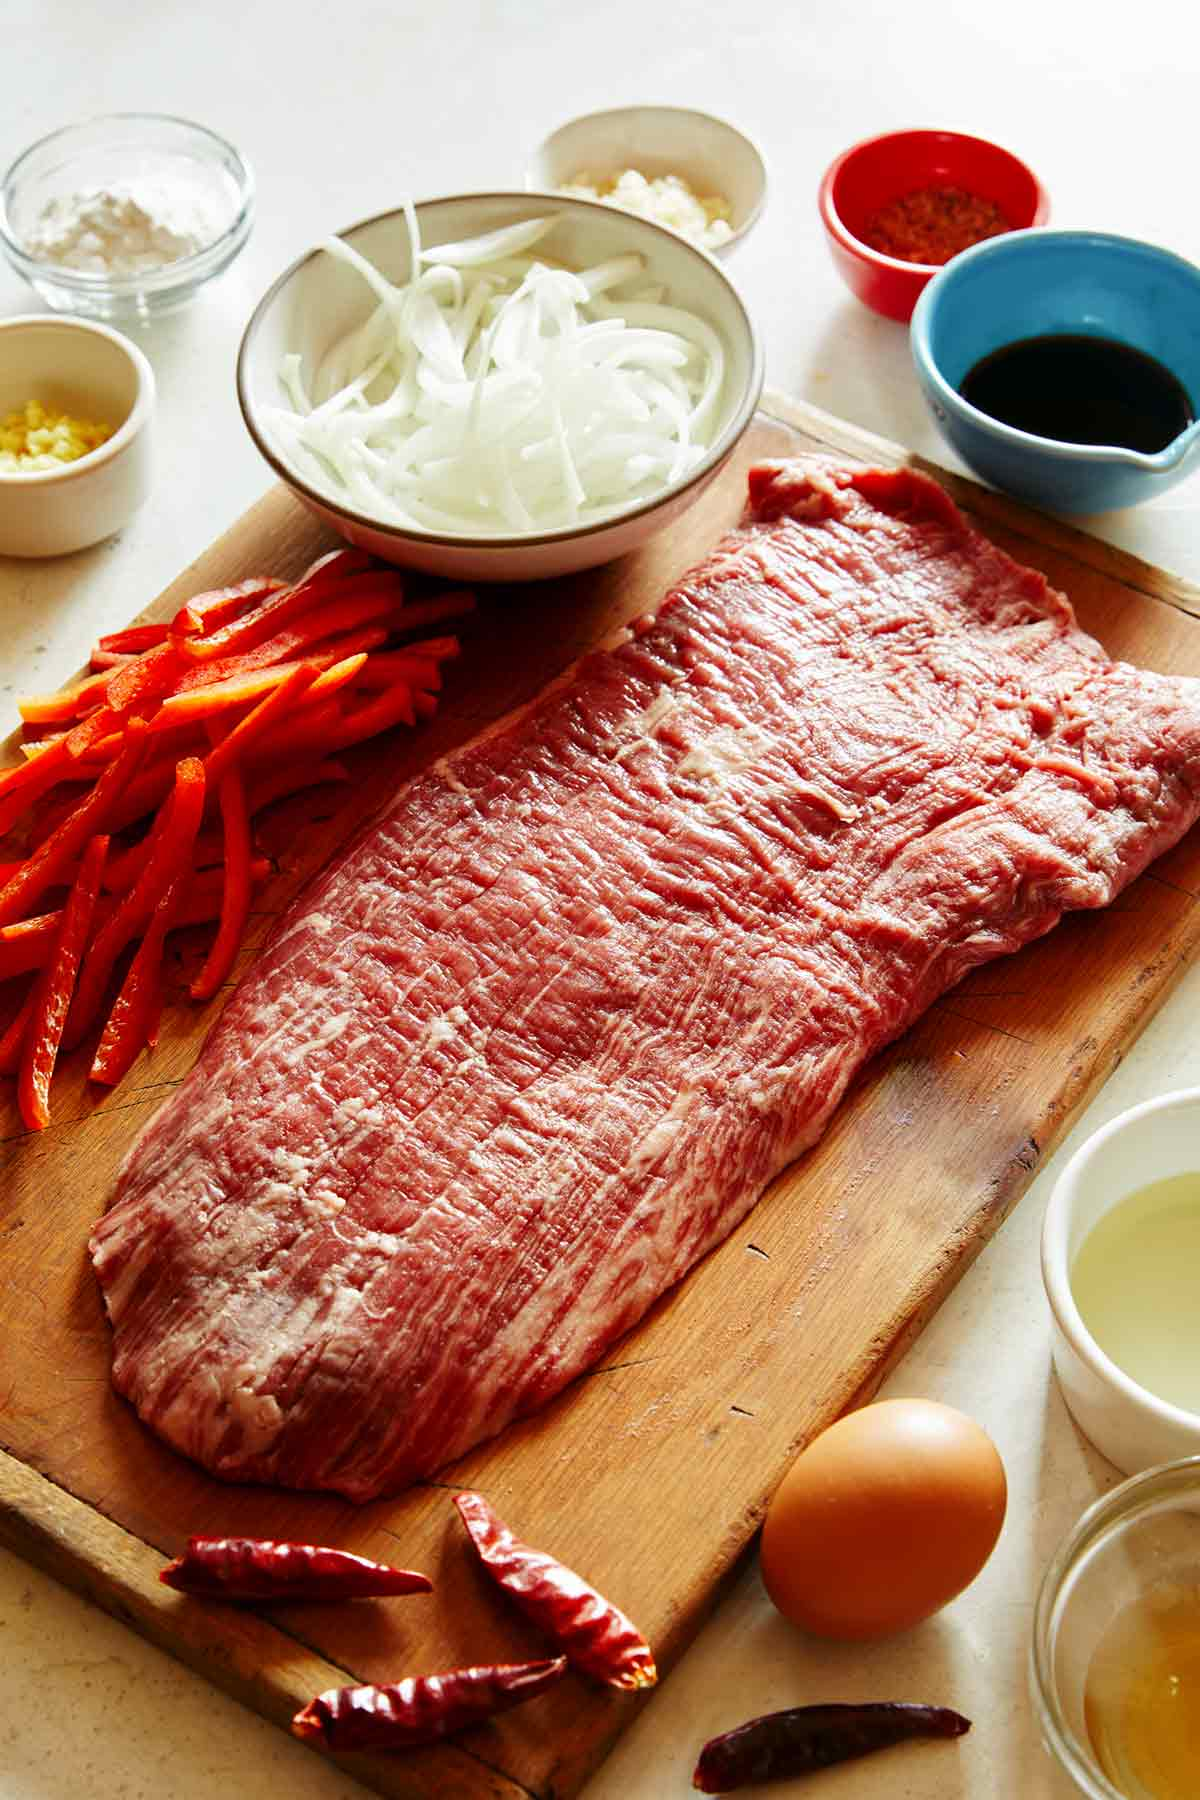 Ingredients to make Szechuan Beef laid out in a kitchen.